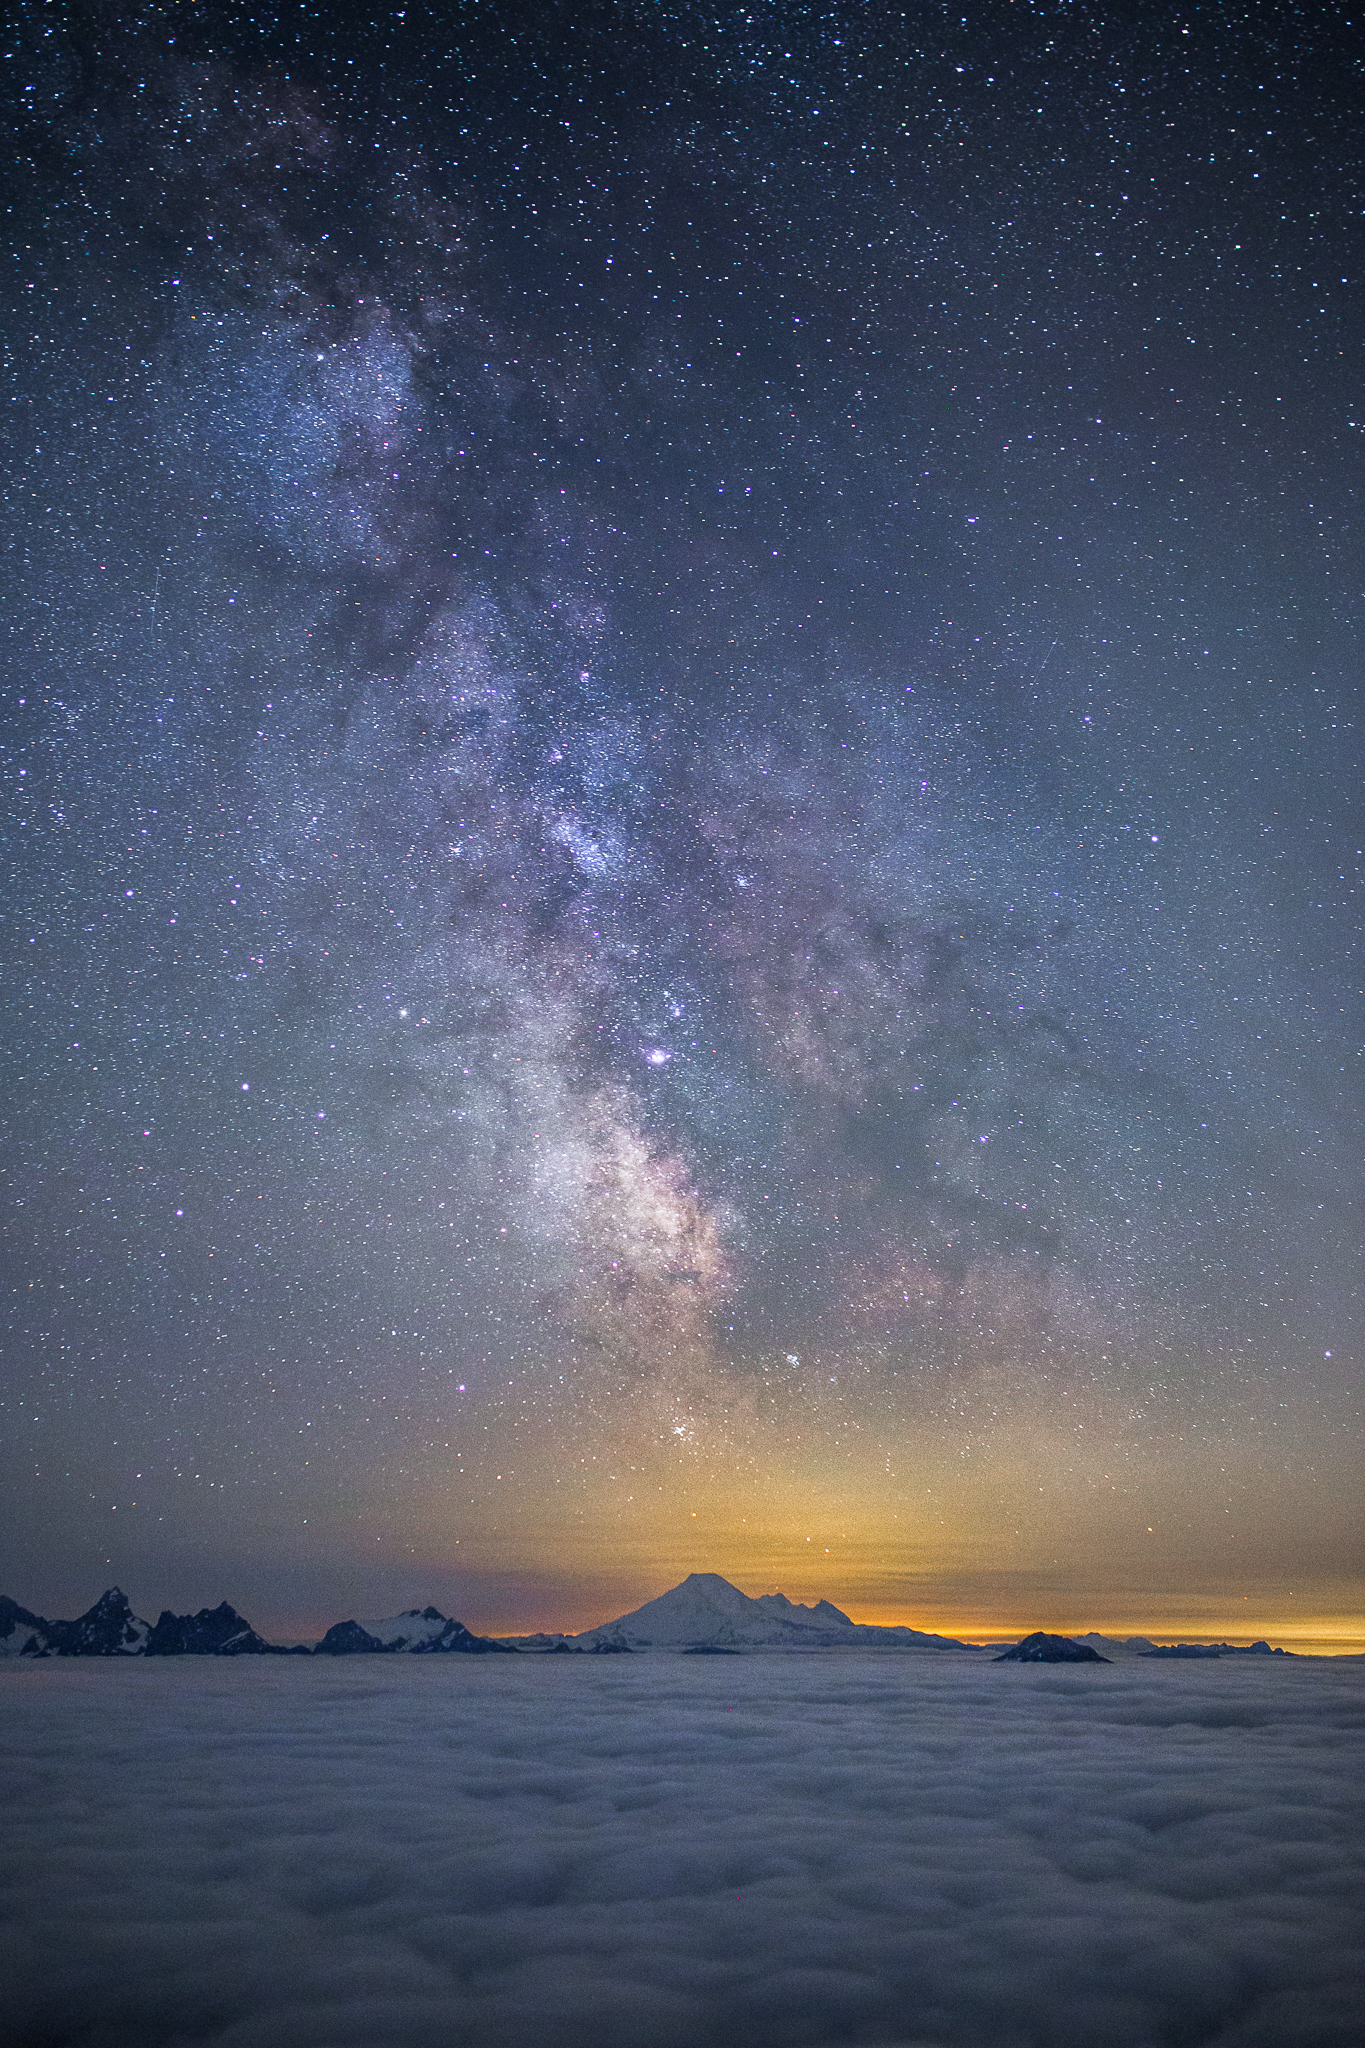 TaylorBurk_MountBaker_Milkyway.jpg